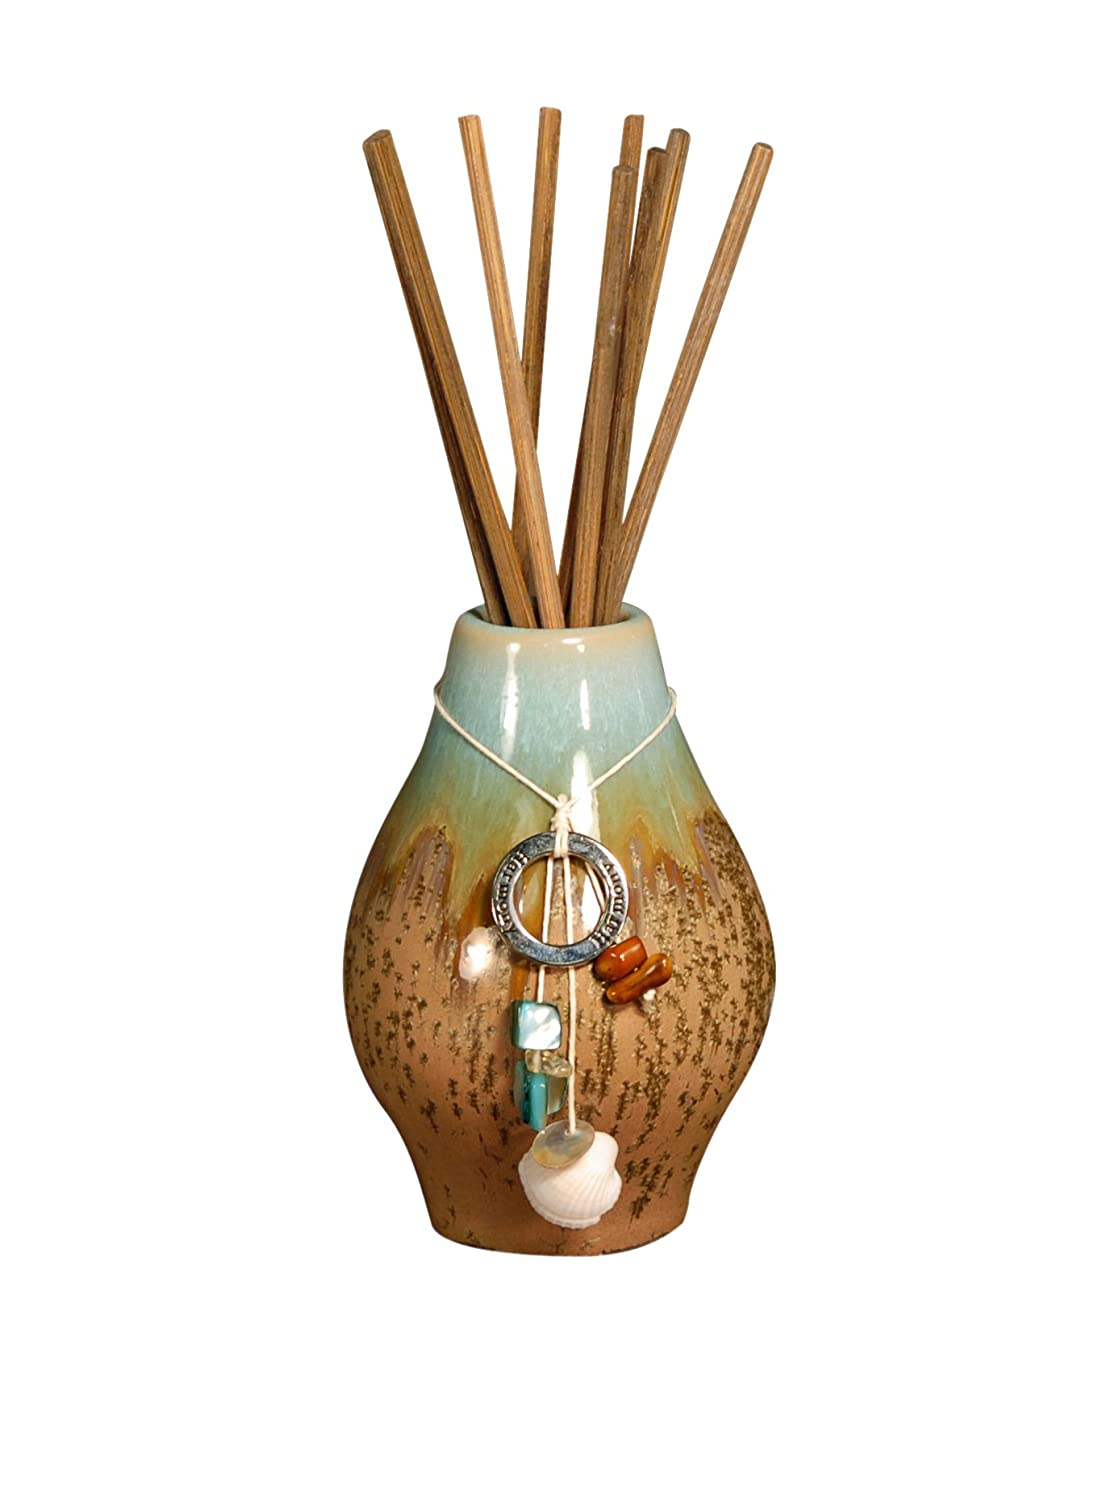 HARMONY TURQUOISE MINI Reed Diffuser Sea Grass Lotus - Pomeroy - San Miguel